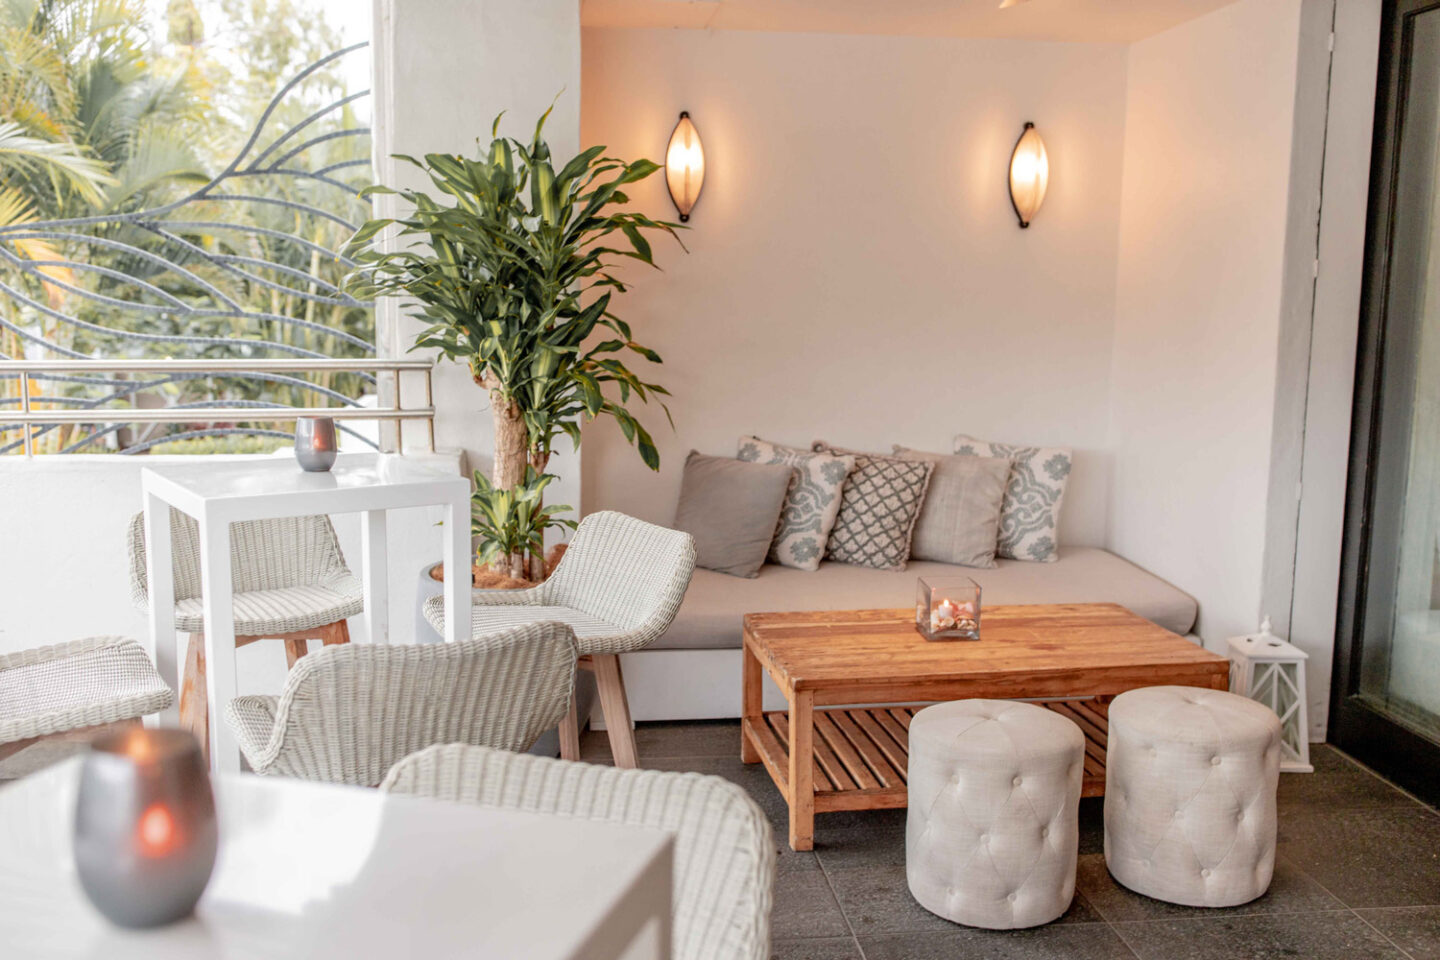 noosa-best-restaurant-hotel--kelseyinlondon-kelsey-heinrichs-what-to-do-in-noosa-Sofitel-Noosa-Pacific-Resort-9